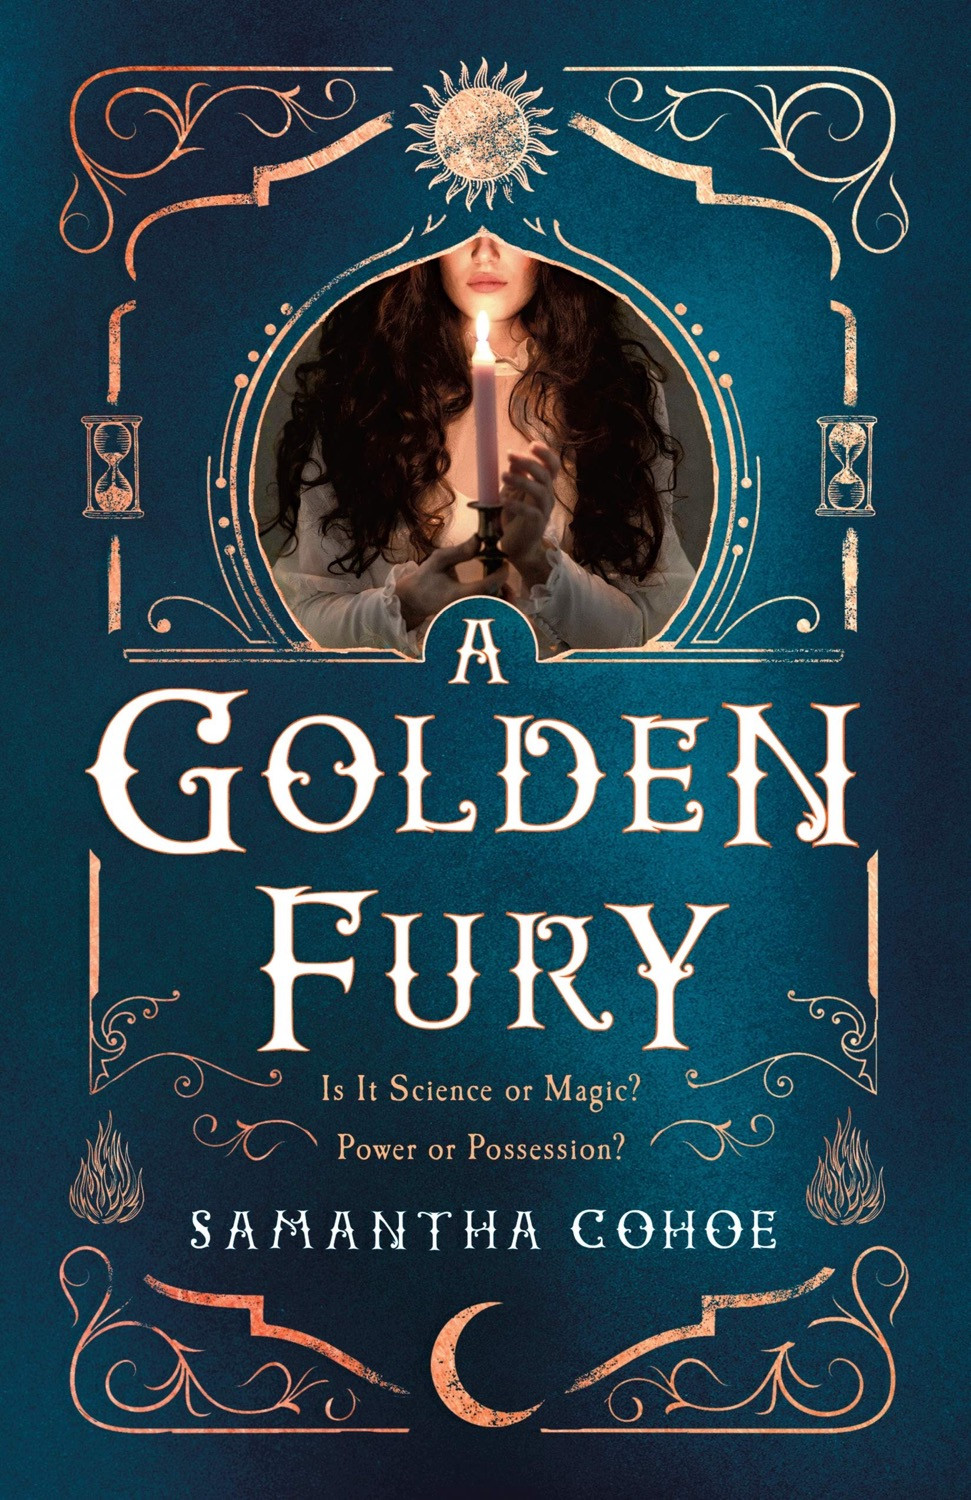 Book Cover: A Golden Fury by Samantha Cohoe  - 10 YA Books Out in October 2020 - Two Arts in a World